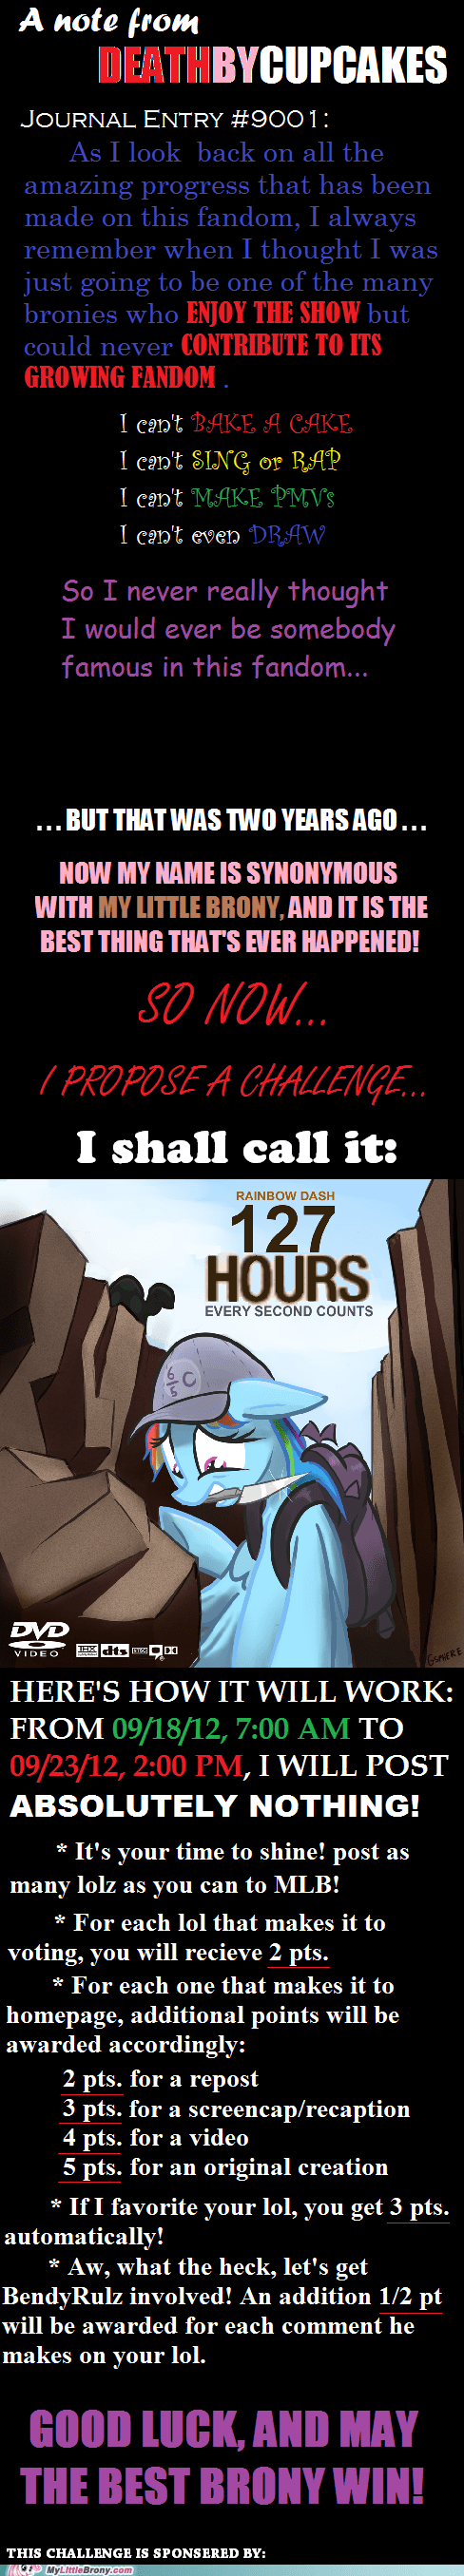 Challenge Accepted deathbycupcakes my little brony - 6593408256